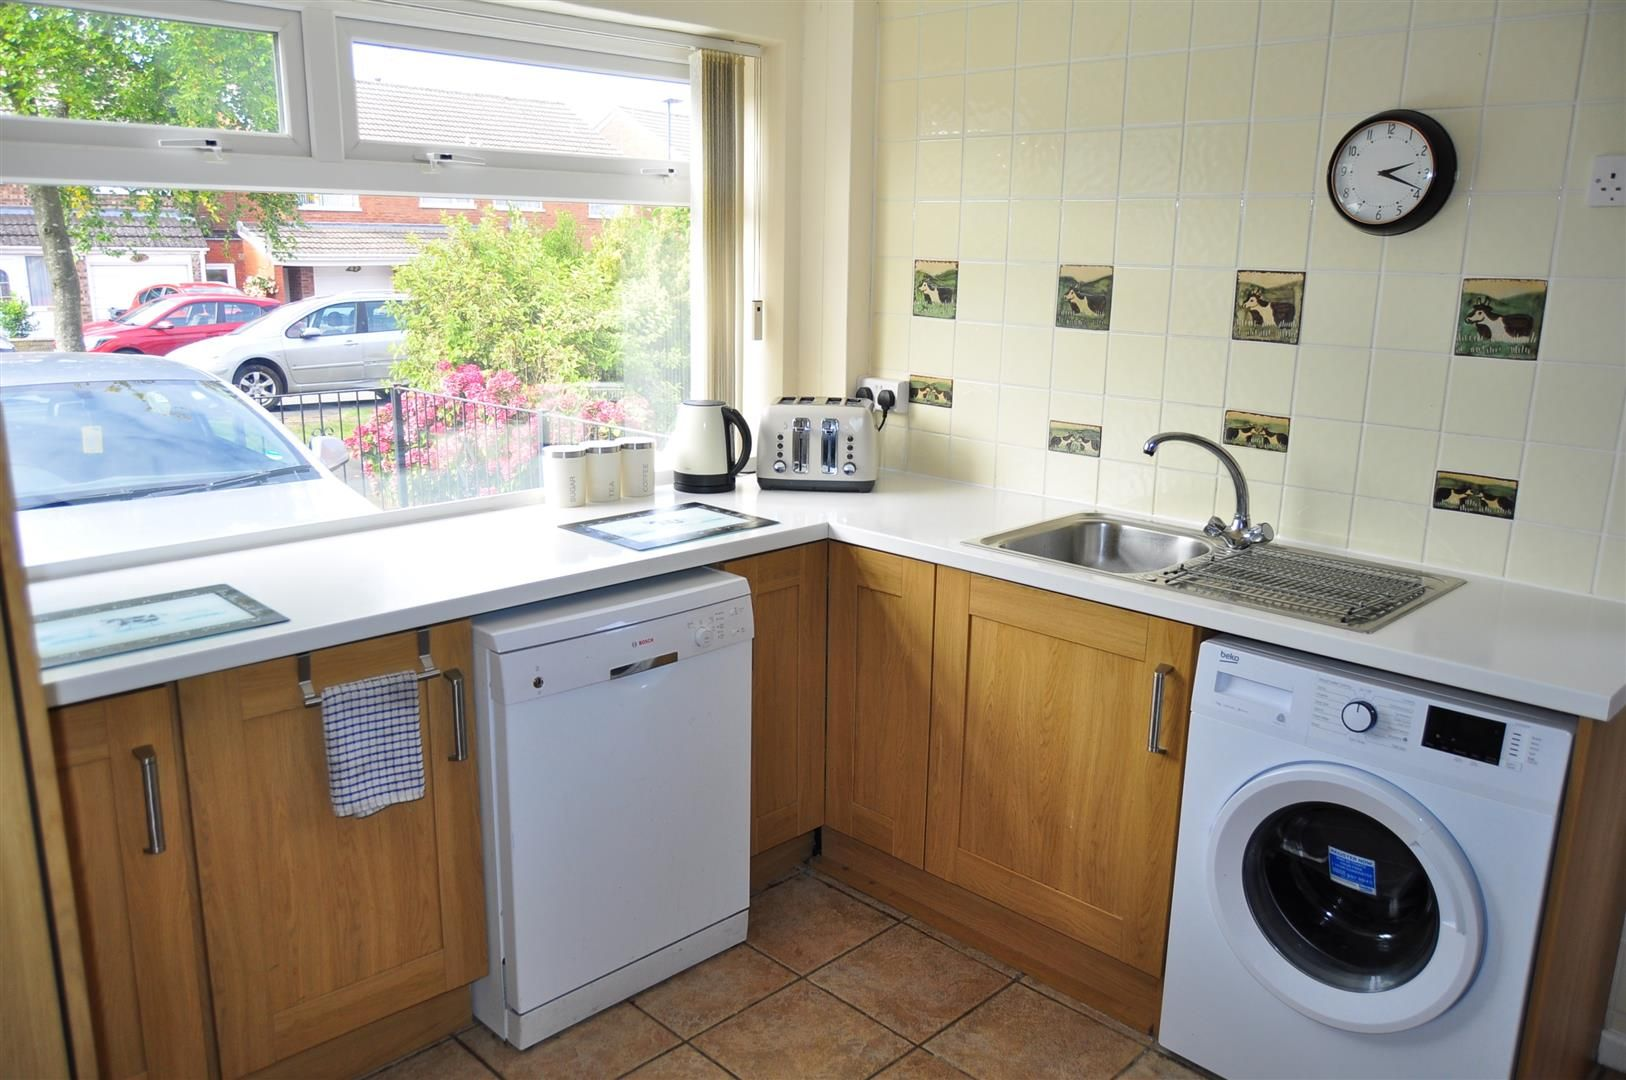 3 bed end-of-terrace for sale in Quinton  - Property Image 4